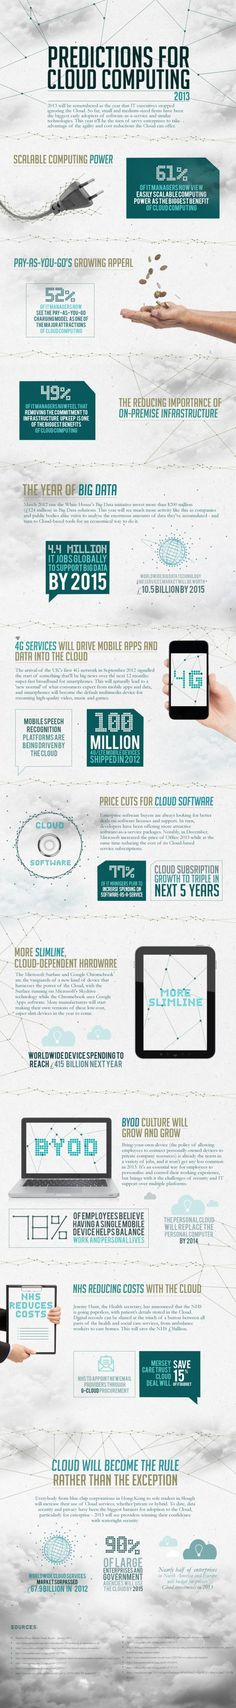 Predictions for Cloud Computing 2013 [Infographic] Cloud Computing, Artificial Intelligence Technology, Cloud Mobile, Certificates Online, Data Processing, Big Data, Seo Services, Computer Science, Need To Know